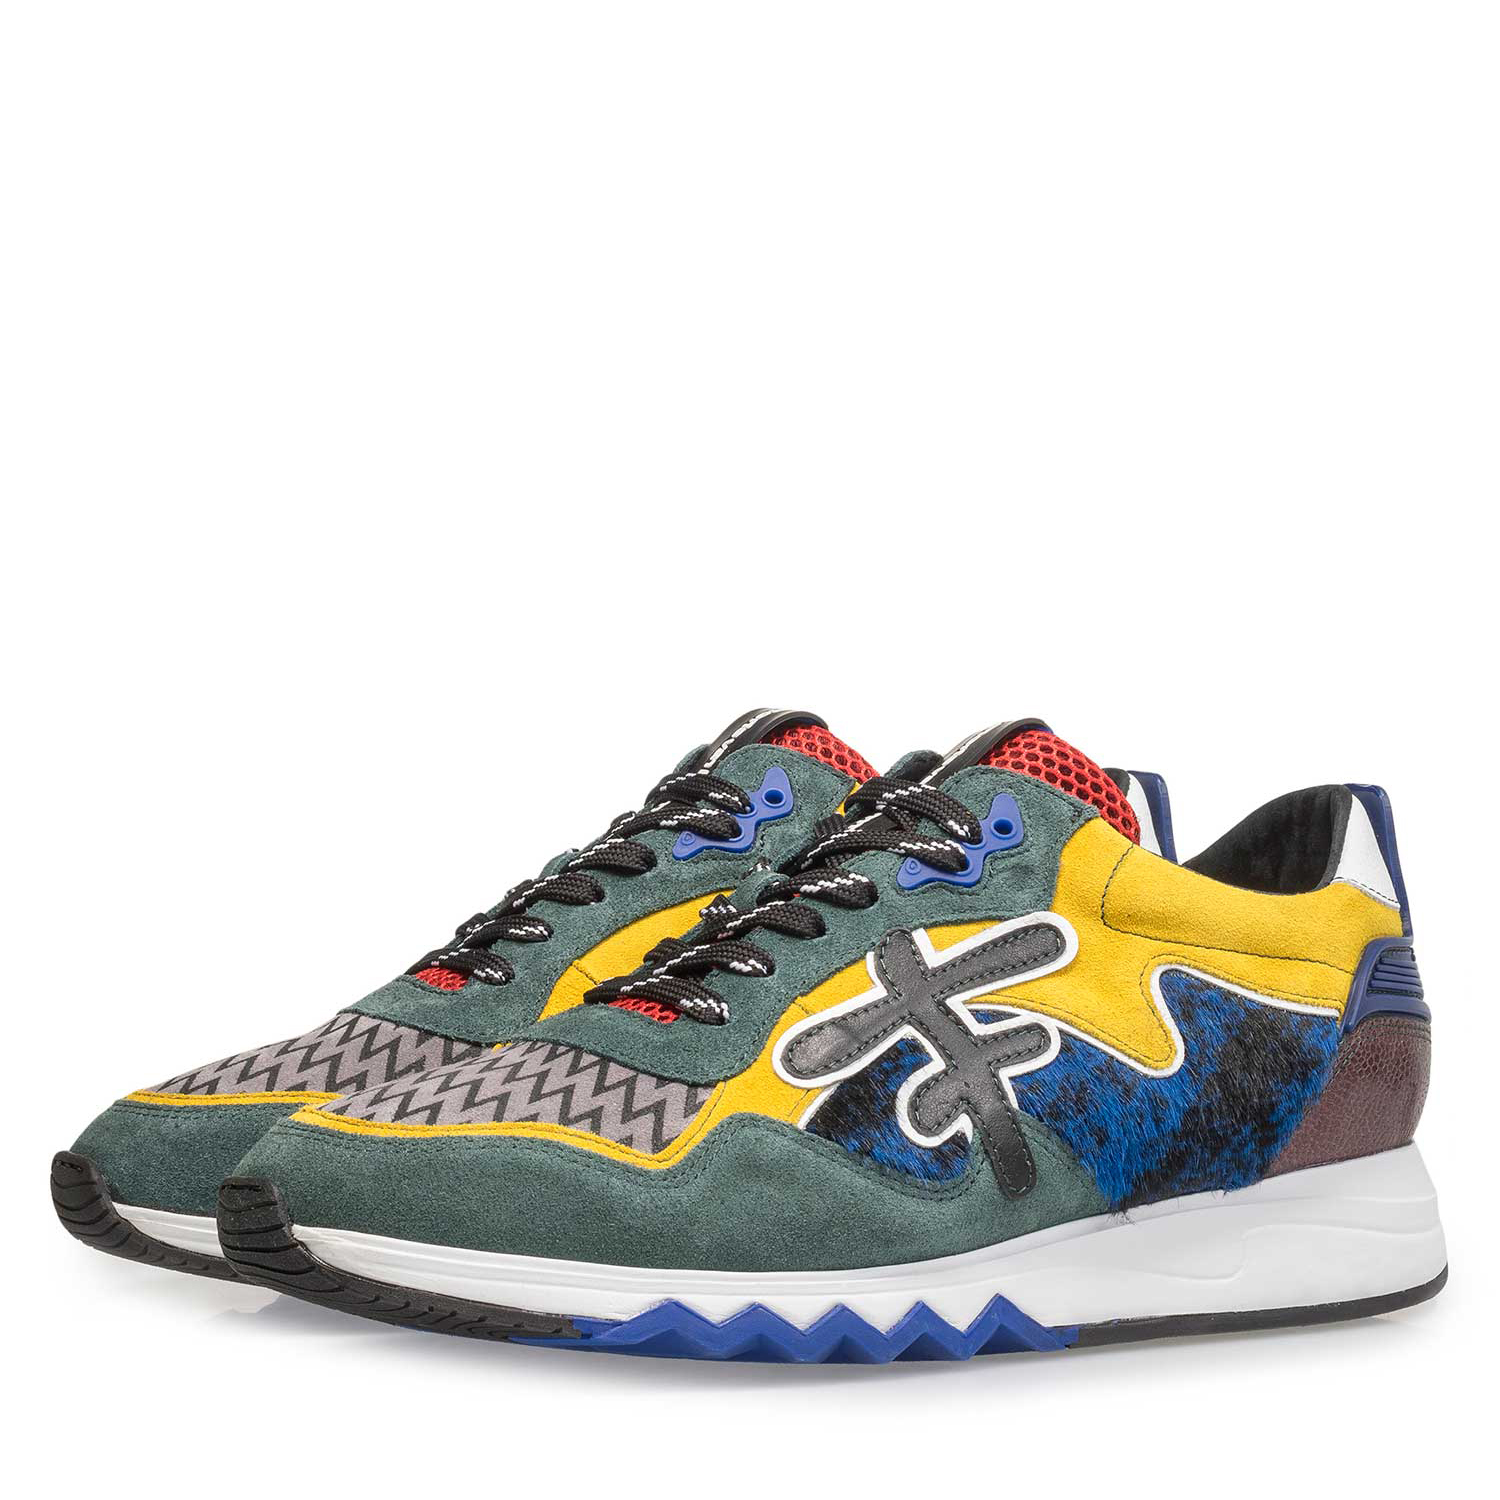 16194/02 - Premium multi-coloured sneaker